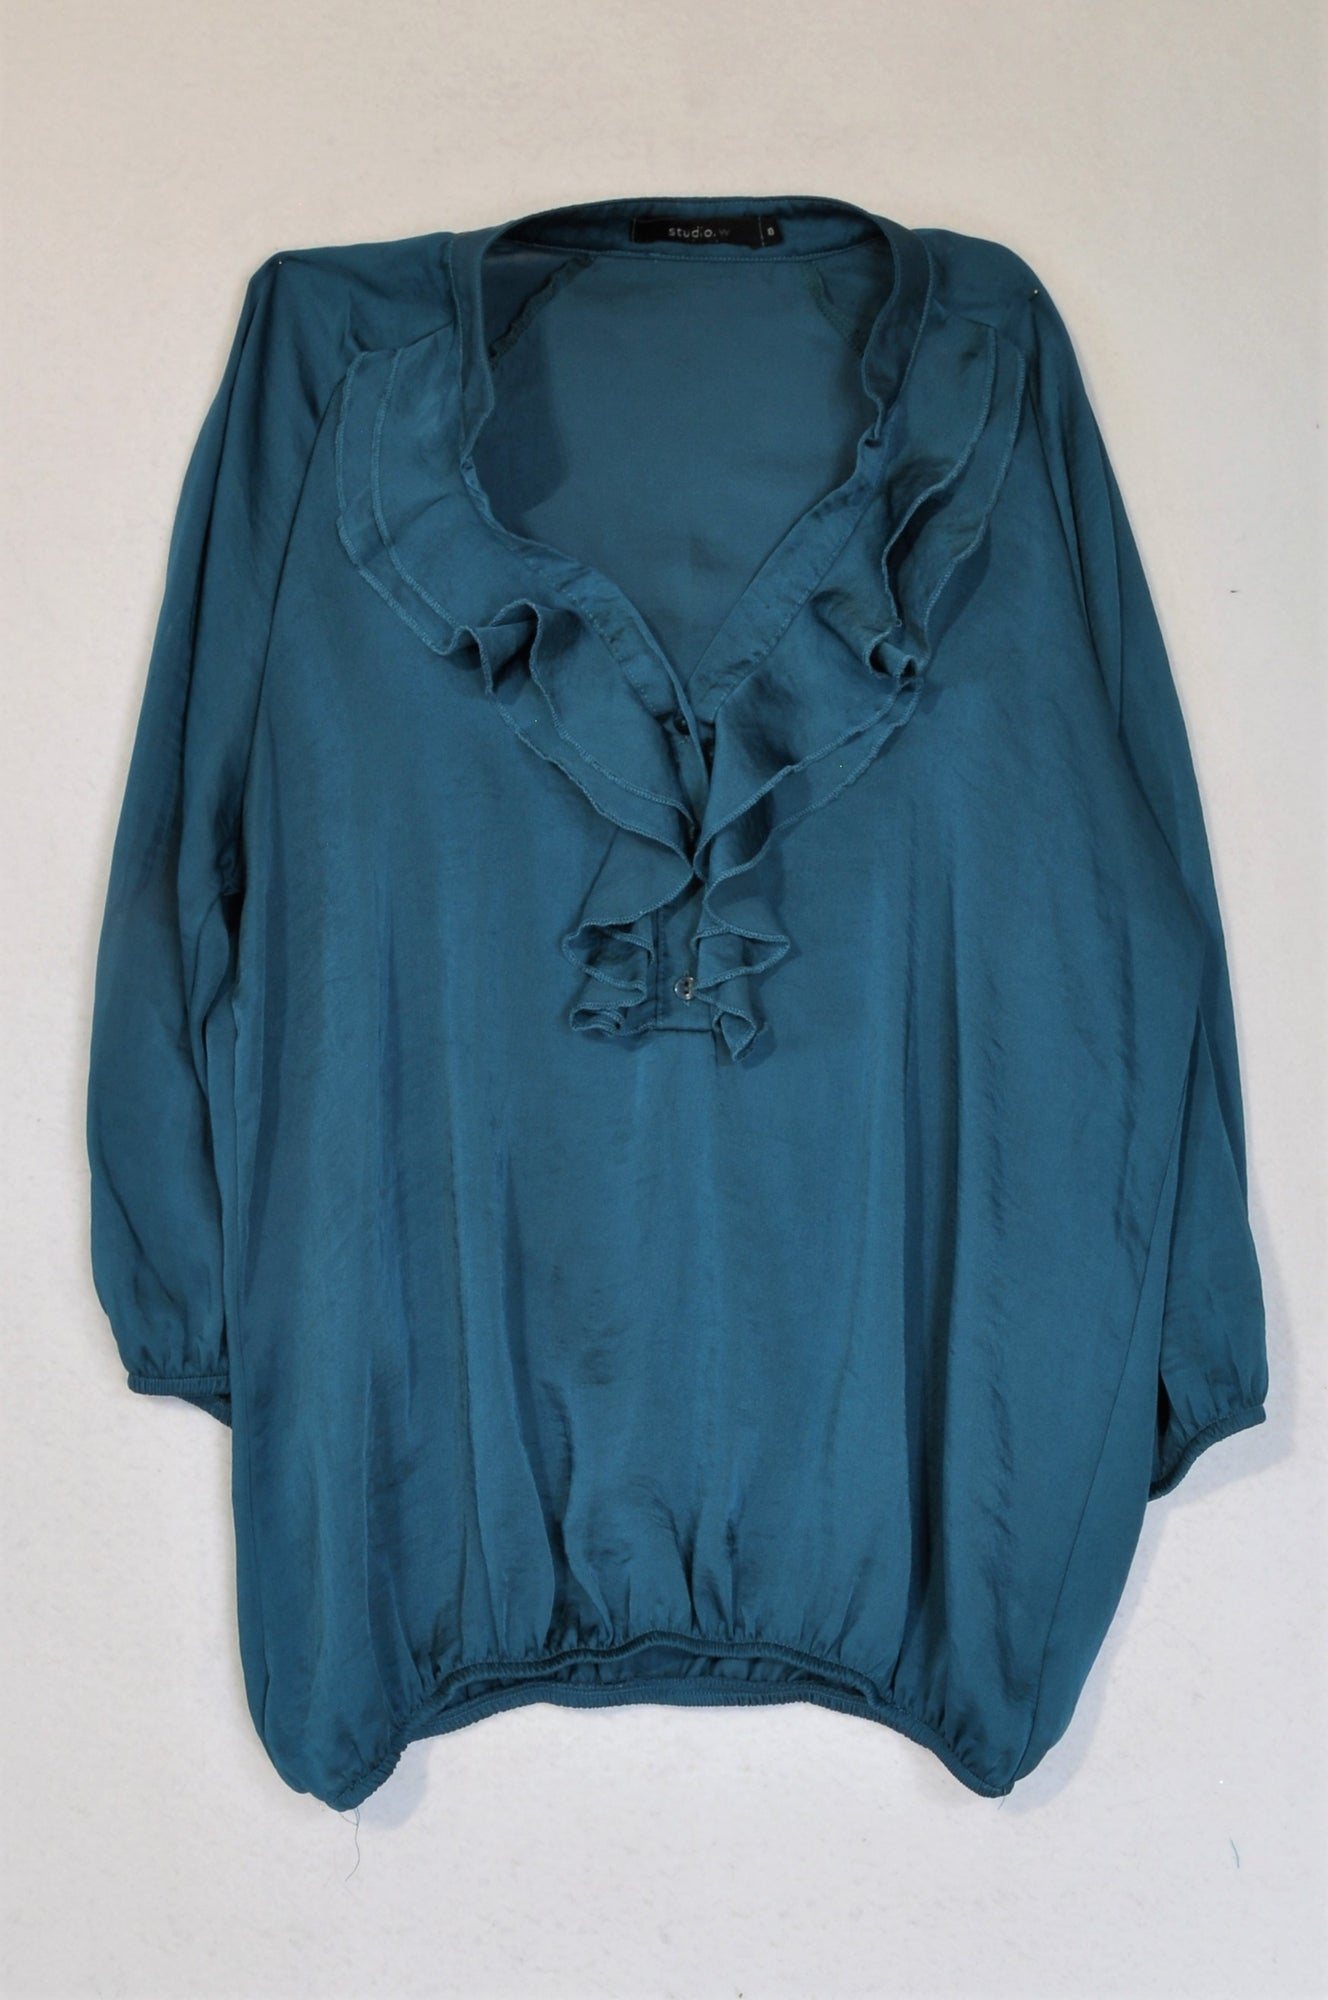 Woolworths Teal Frill Bodice 3/4 Sleeve Blouse Women Size 10